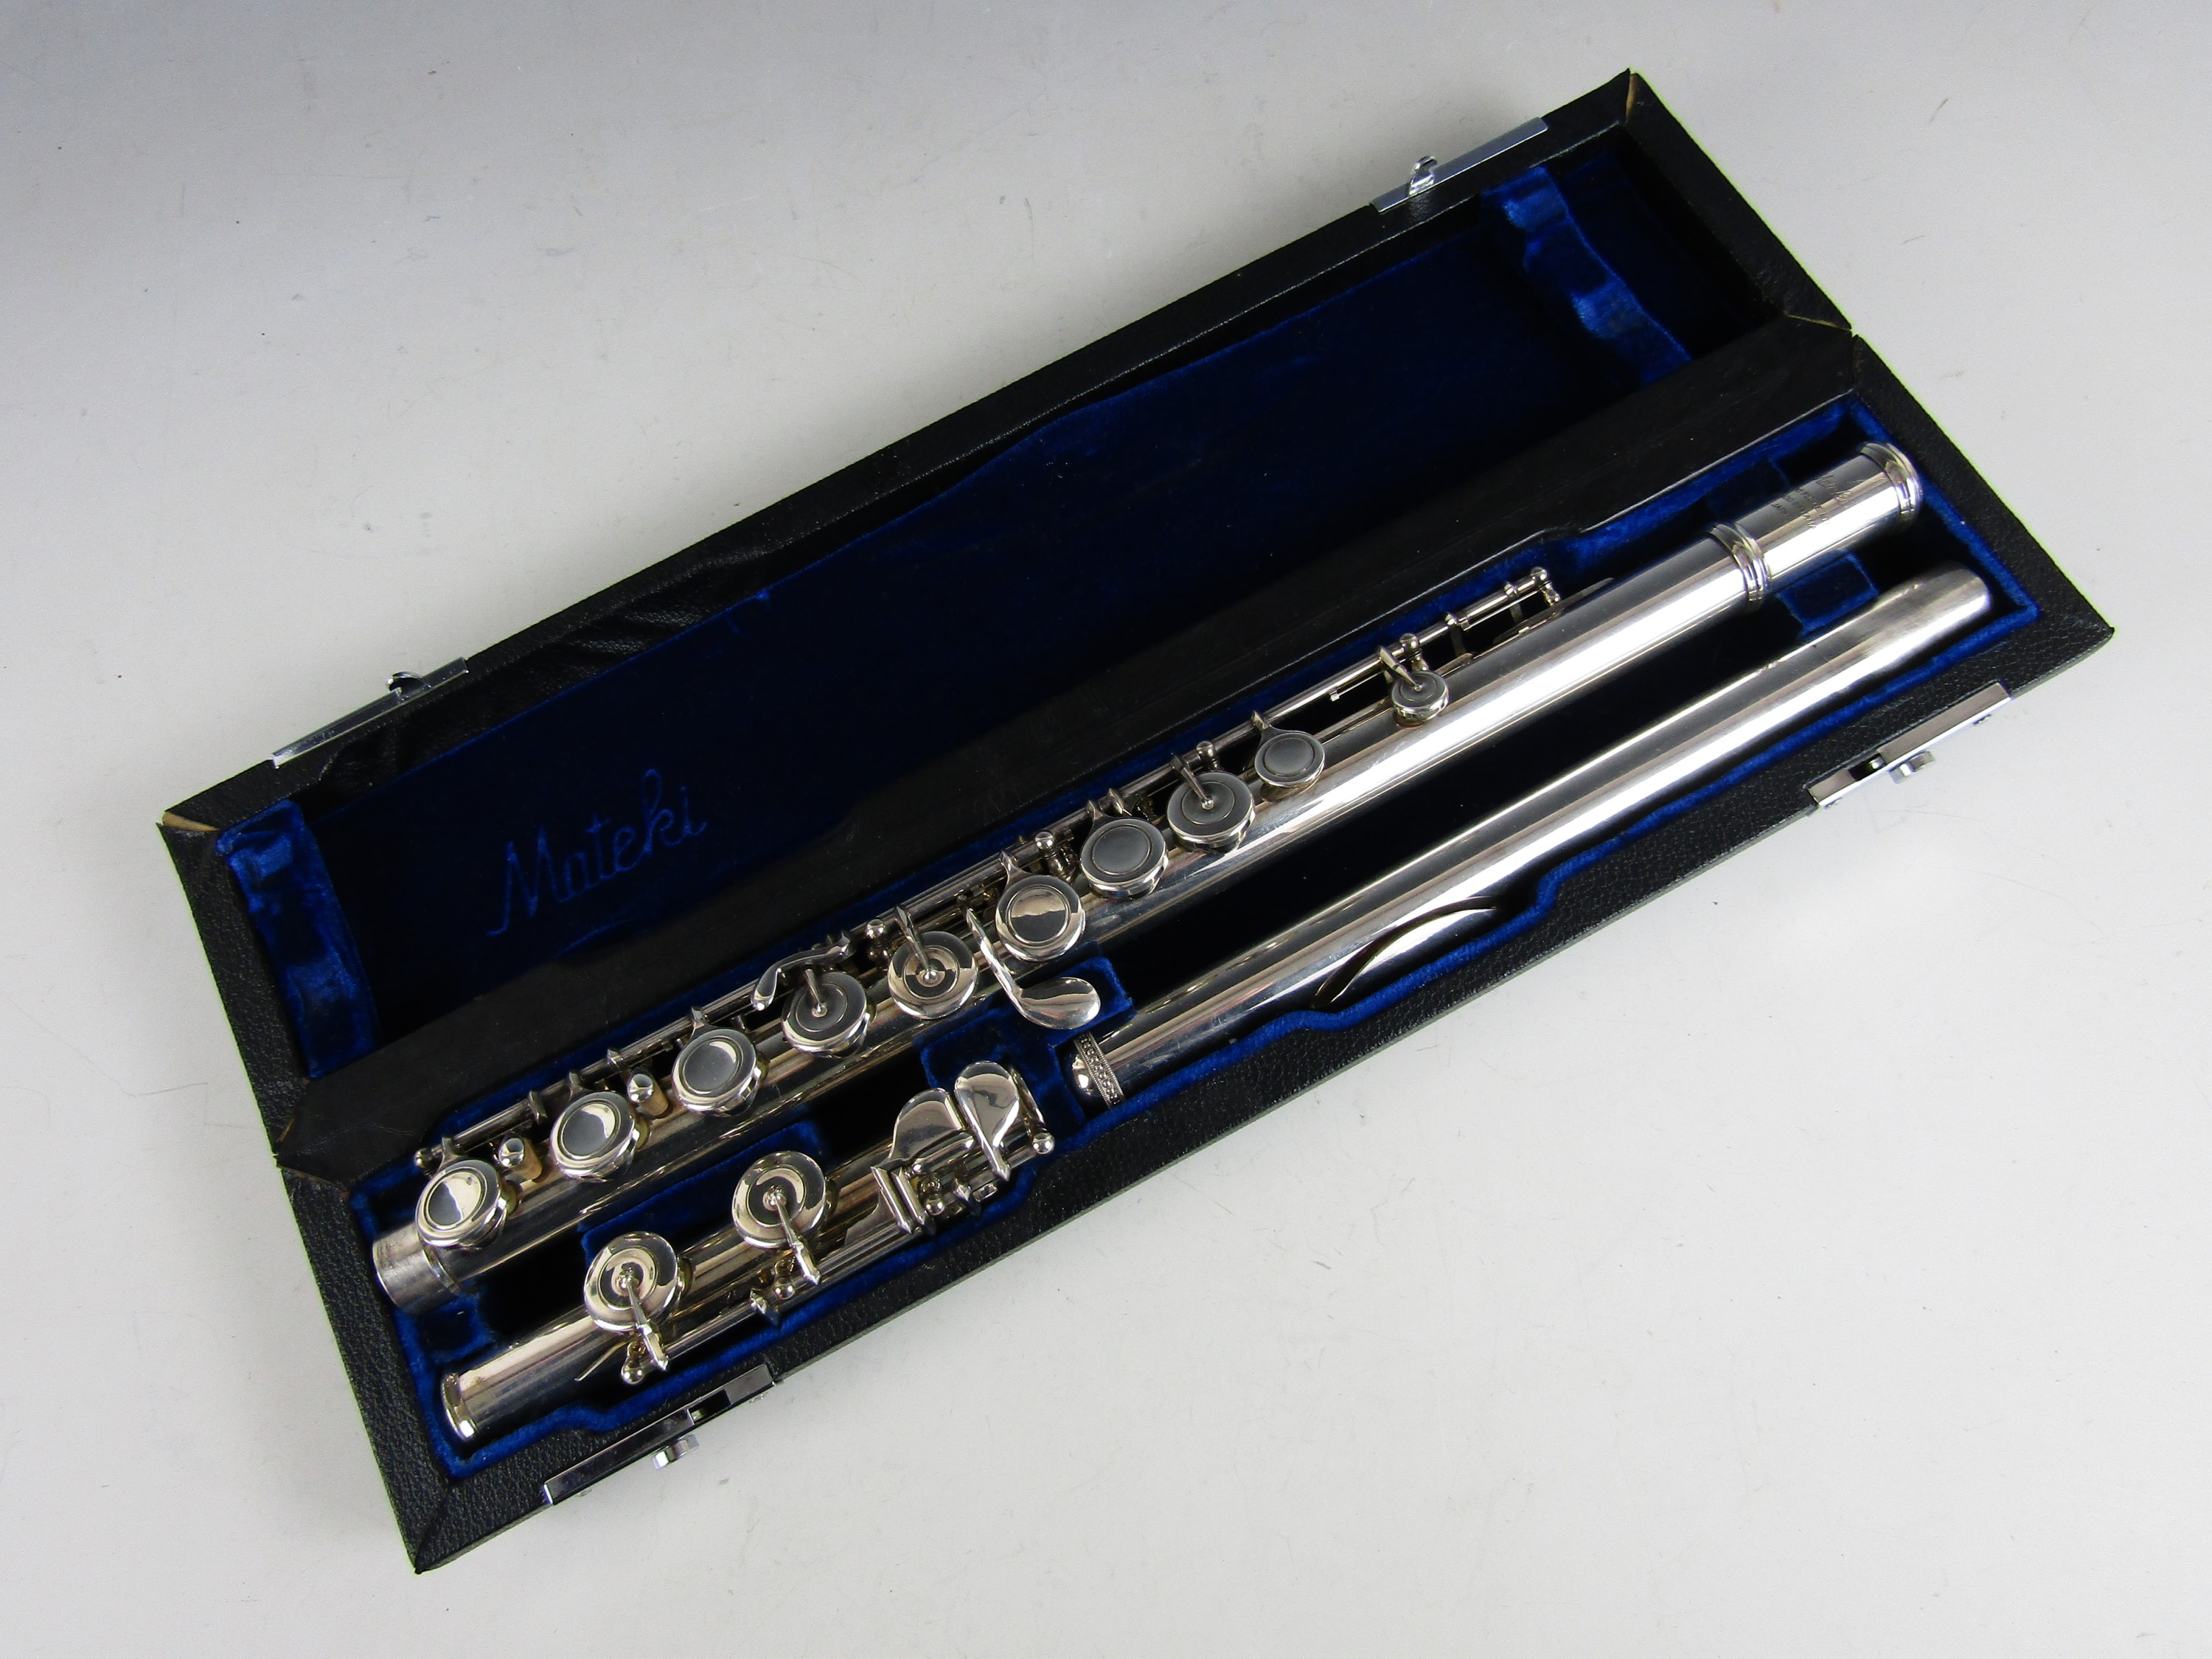 Lot 30 - A Mateki MO-021 flute, serial number 0565, cased